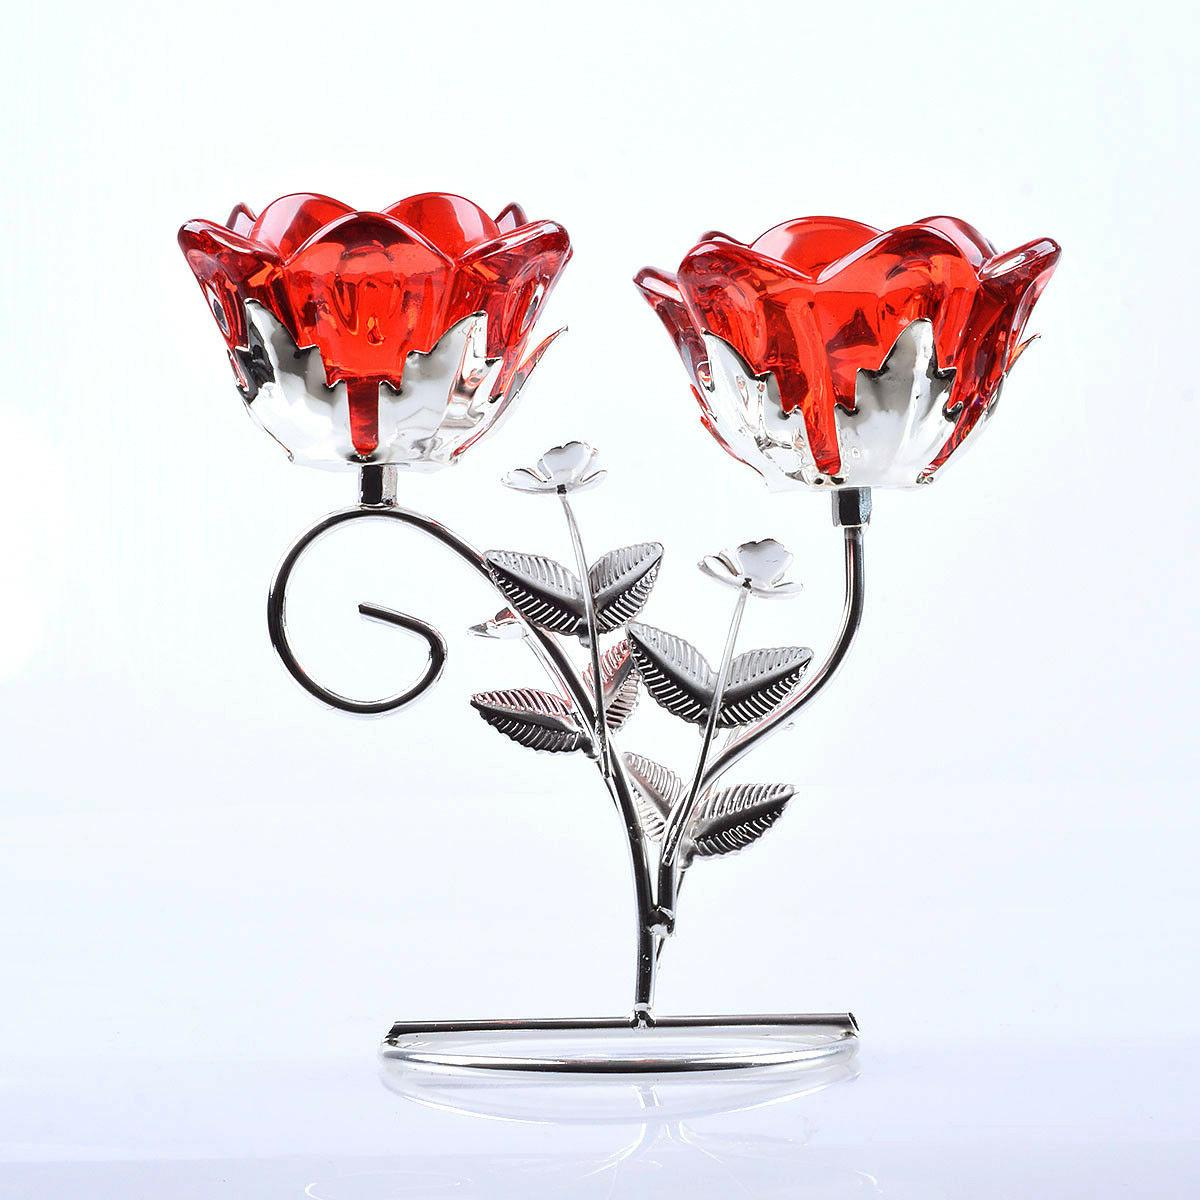 2 Arm Red Flower Glass Tealight Candle Holder Candlestick